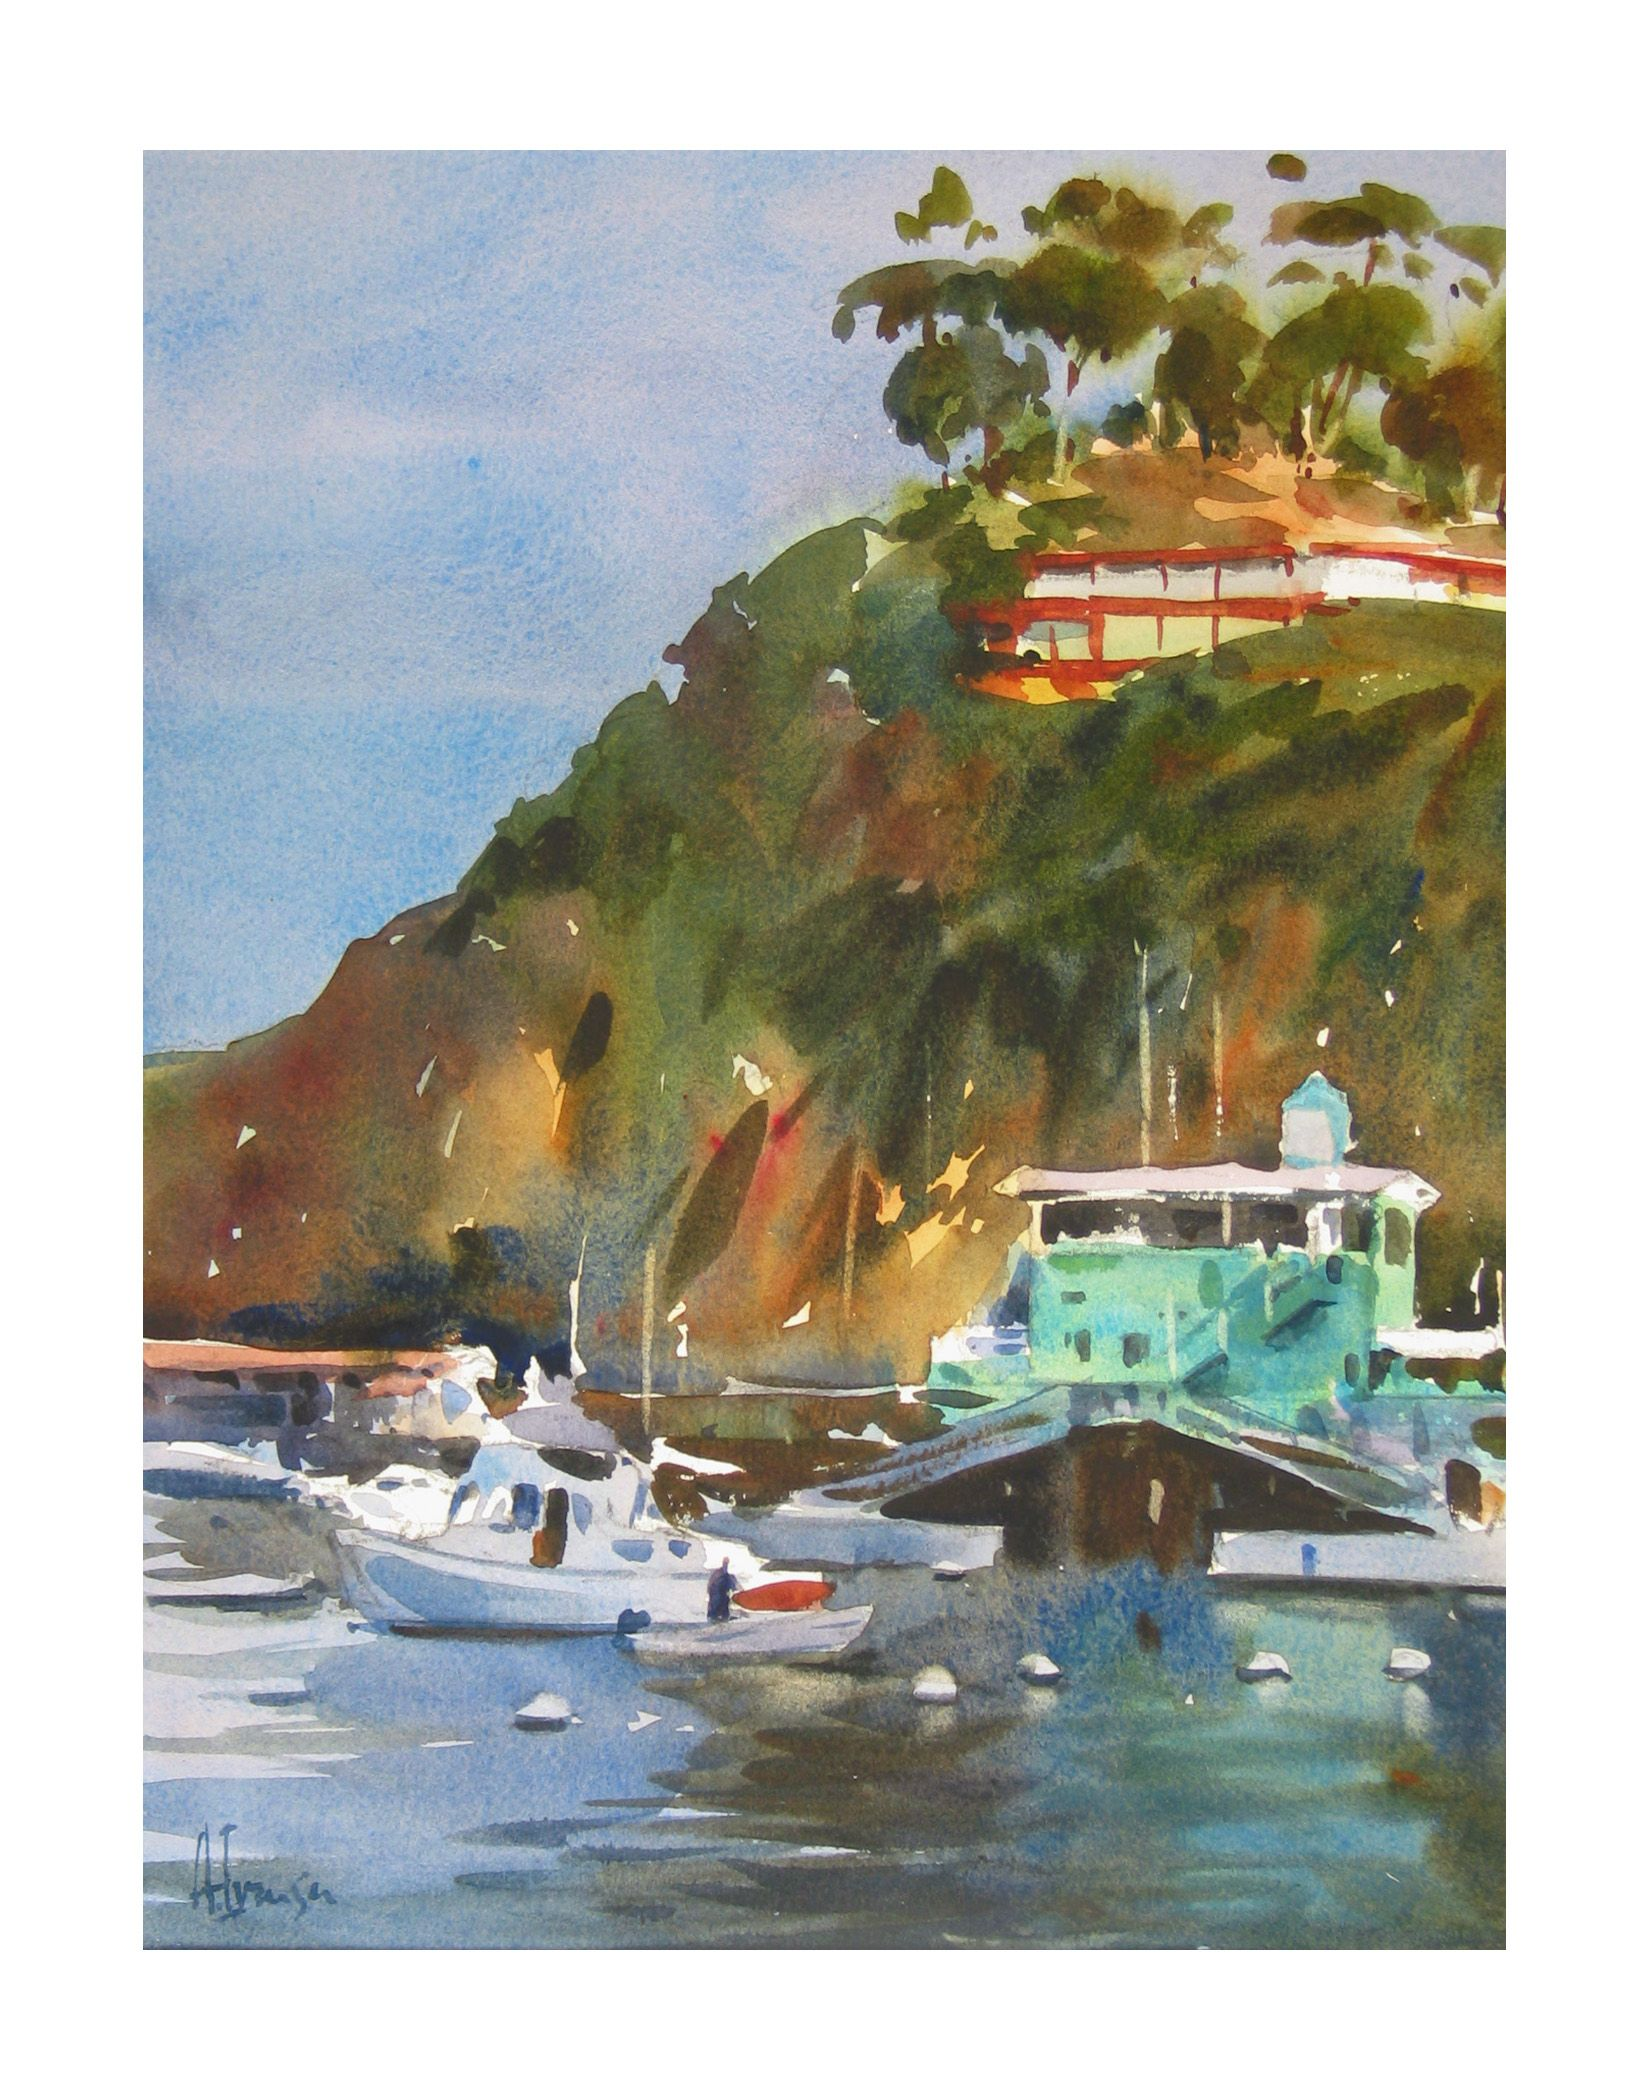 Watercolor artist magazine palm coast fl - Last Light Avalon Listen To Andy Evansen Talk About How He Built His Watercolor Painting